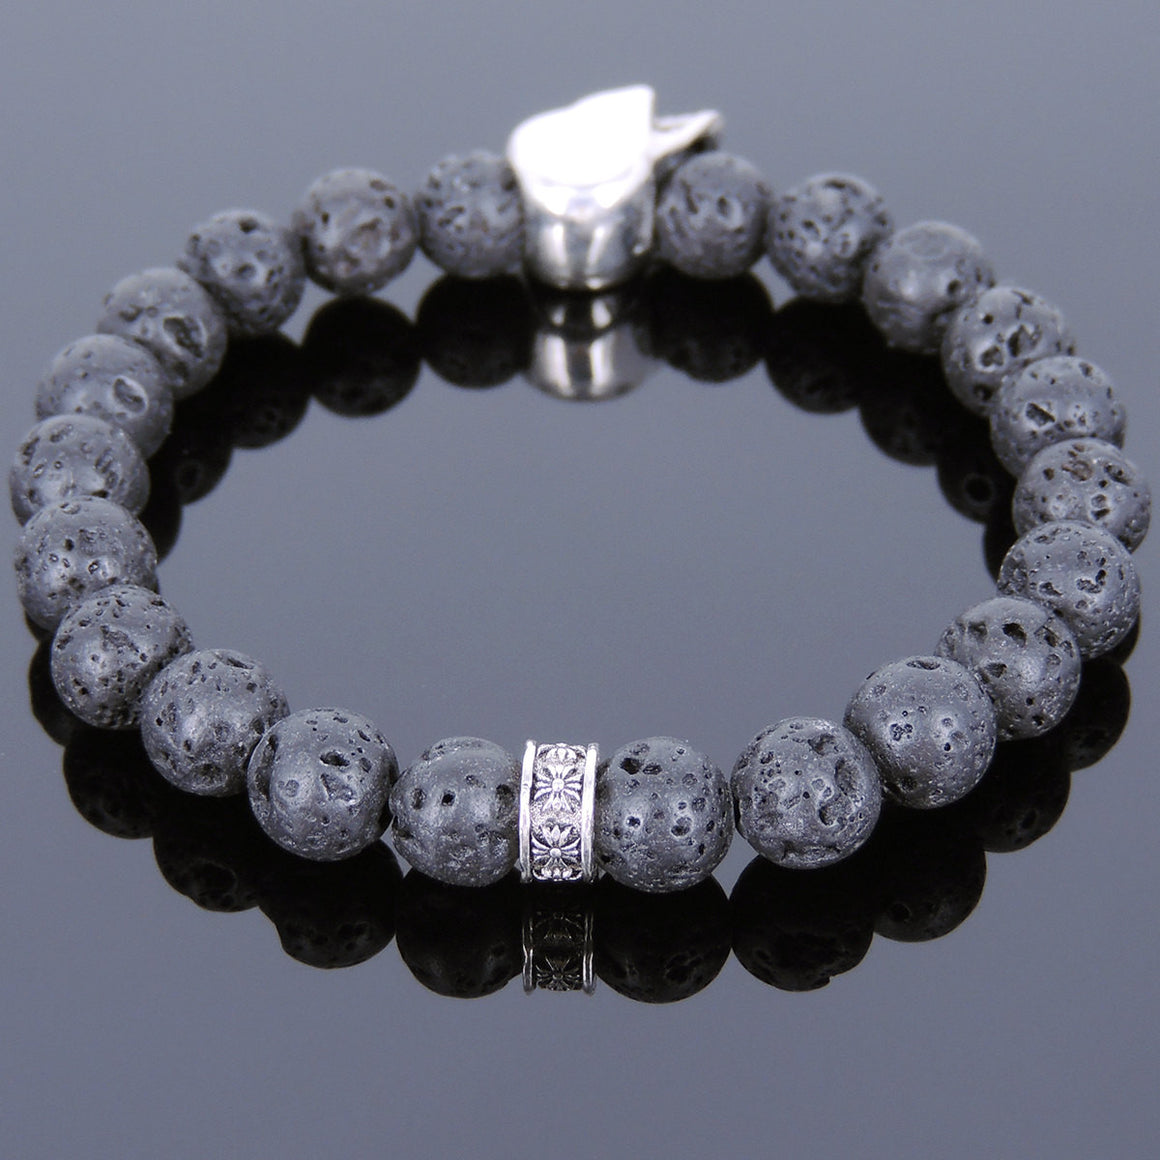 Lava Rock Healing Stone Bracelet with S925 Sterling Silver Skull Bead & Cross Spacer - Handmade by Gem & Silver BR728